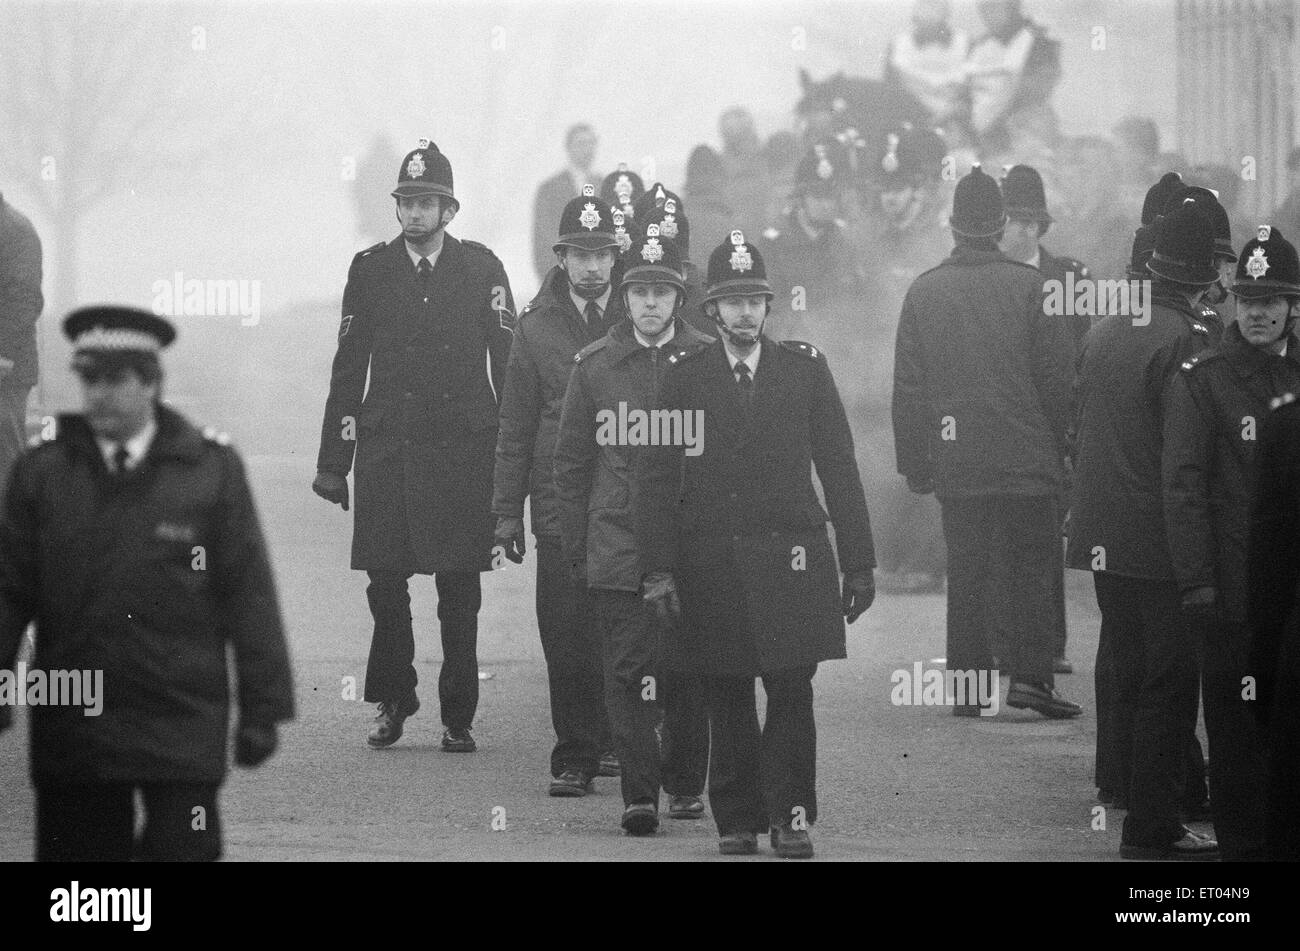 Miners Strike 1984 - 1985, Pictured. Pickets at Lea Hall Colliery, Rugeley, Staffordshire, England, Friday 23rd - Stock Image